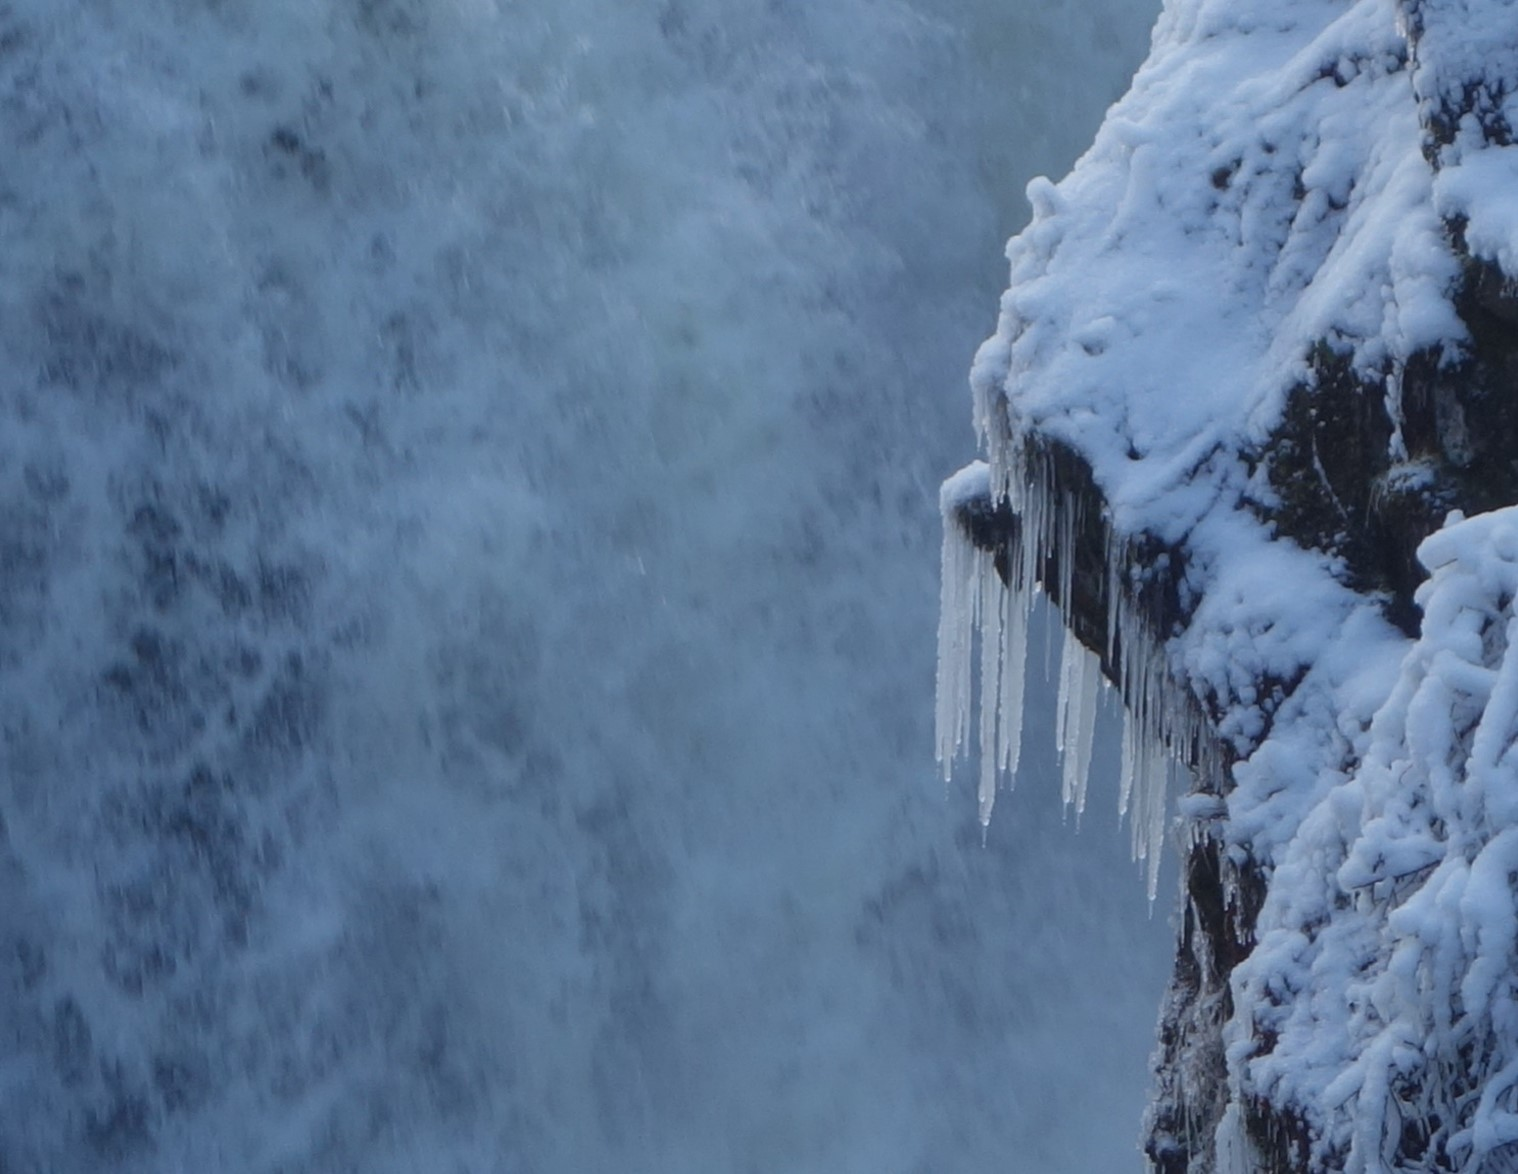 JoJourneys | dripping ice, winter